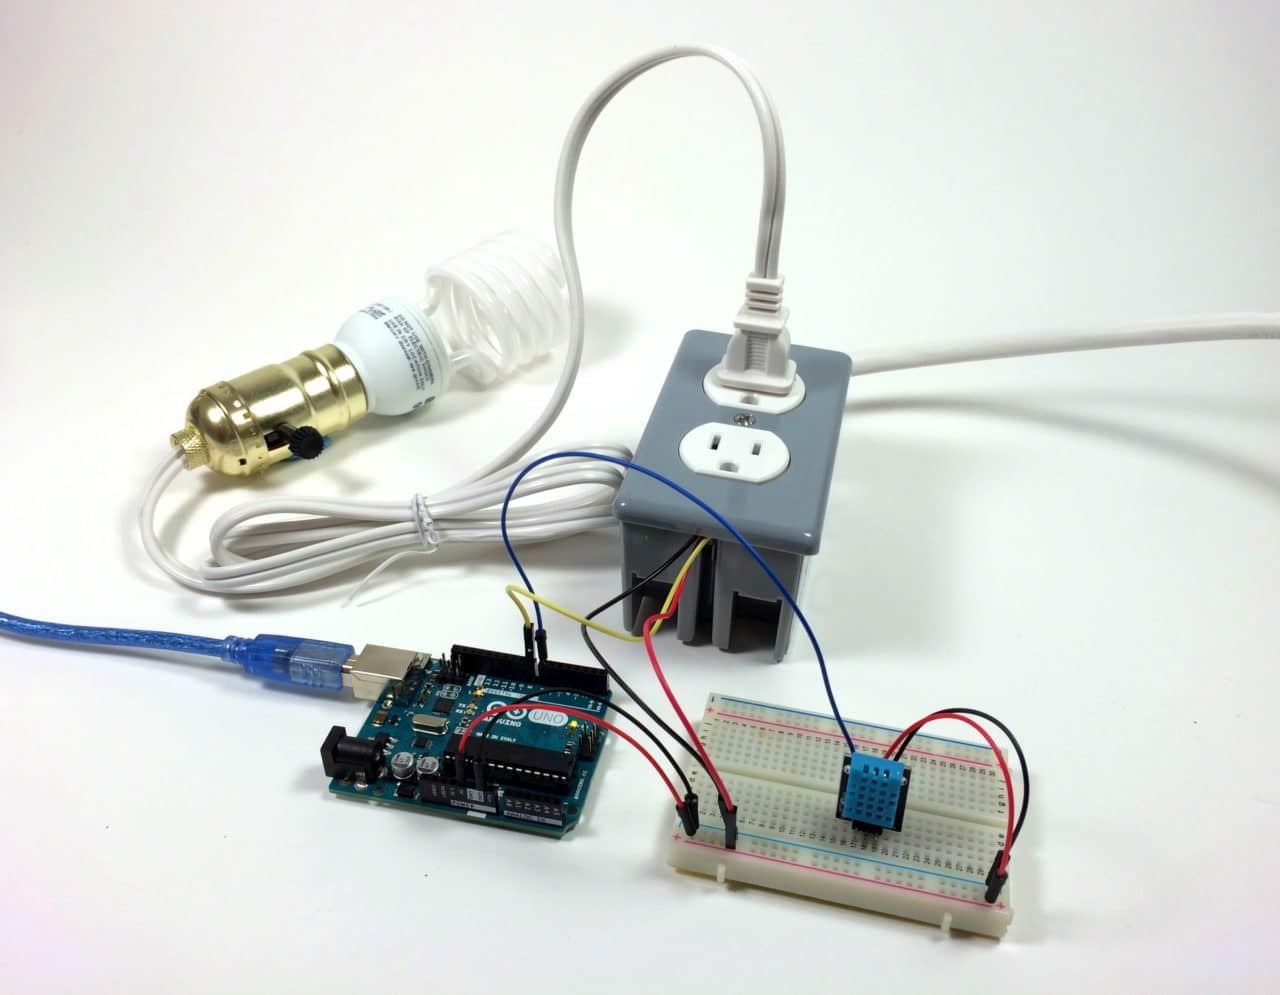 Miraculous Turn Any Appliance Into A Smart Device With An Arduino Controlled Wiring Cloud Hemtegremohammedshrineorg